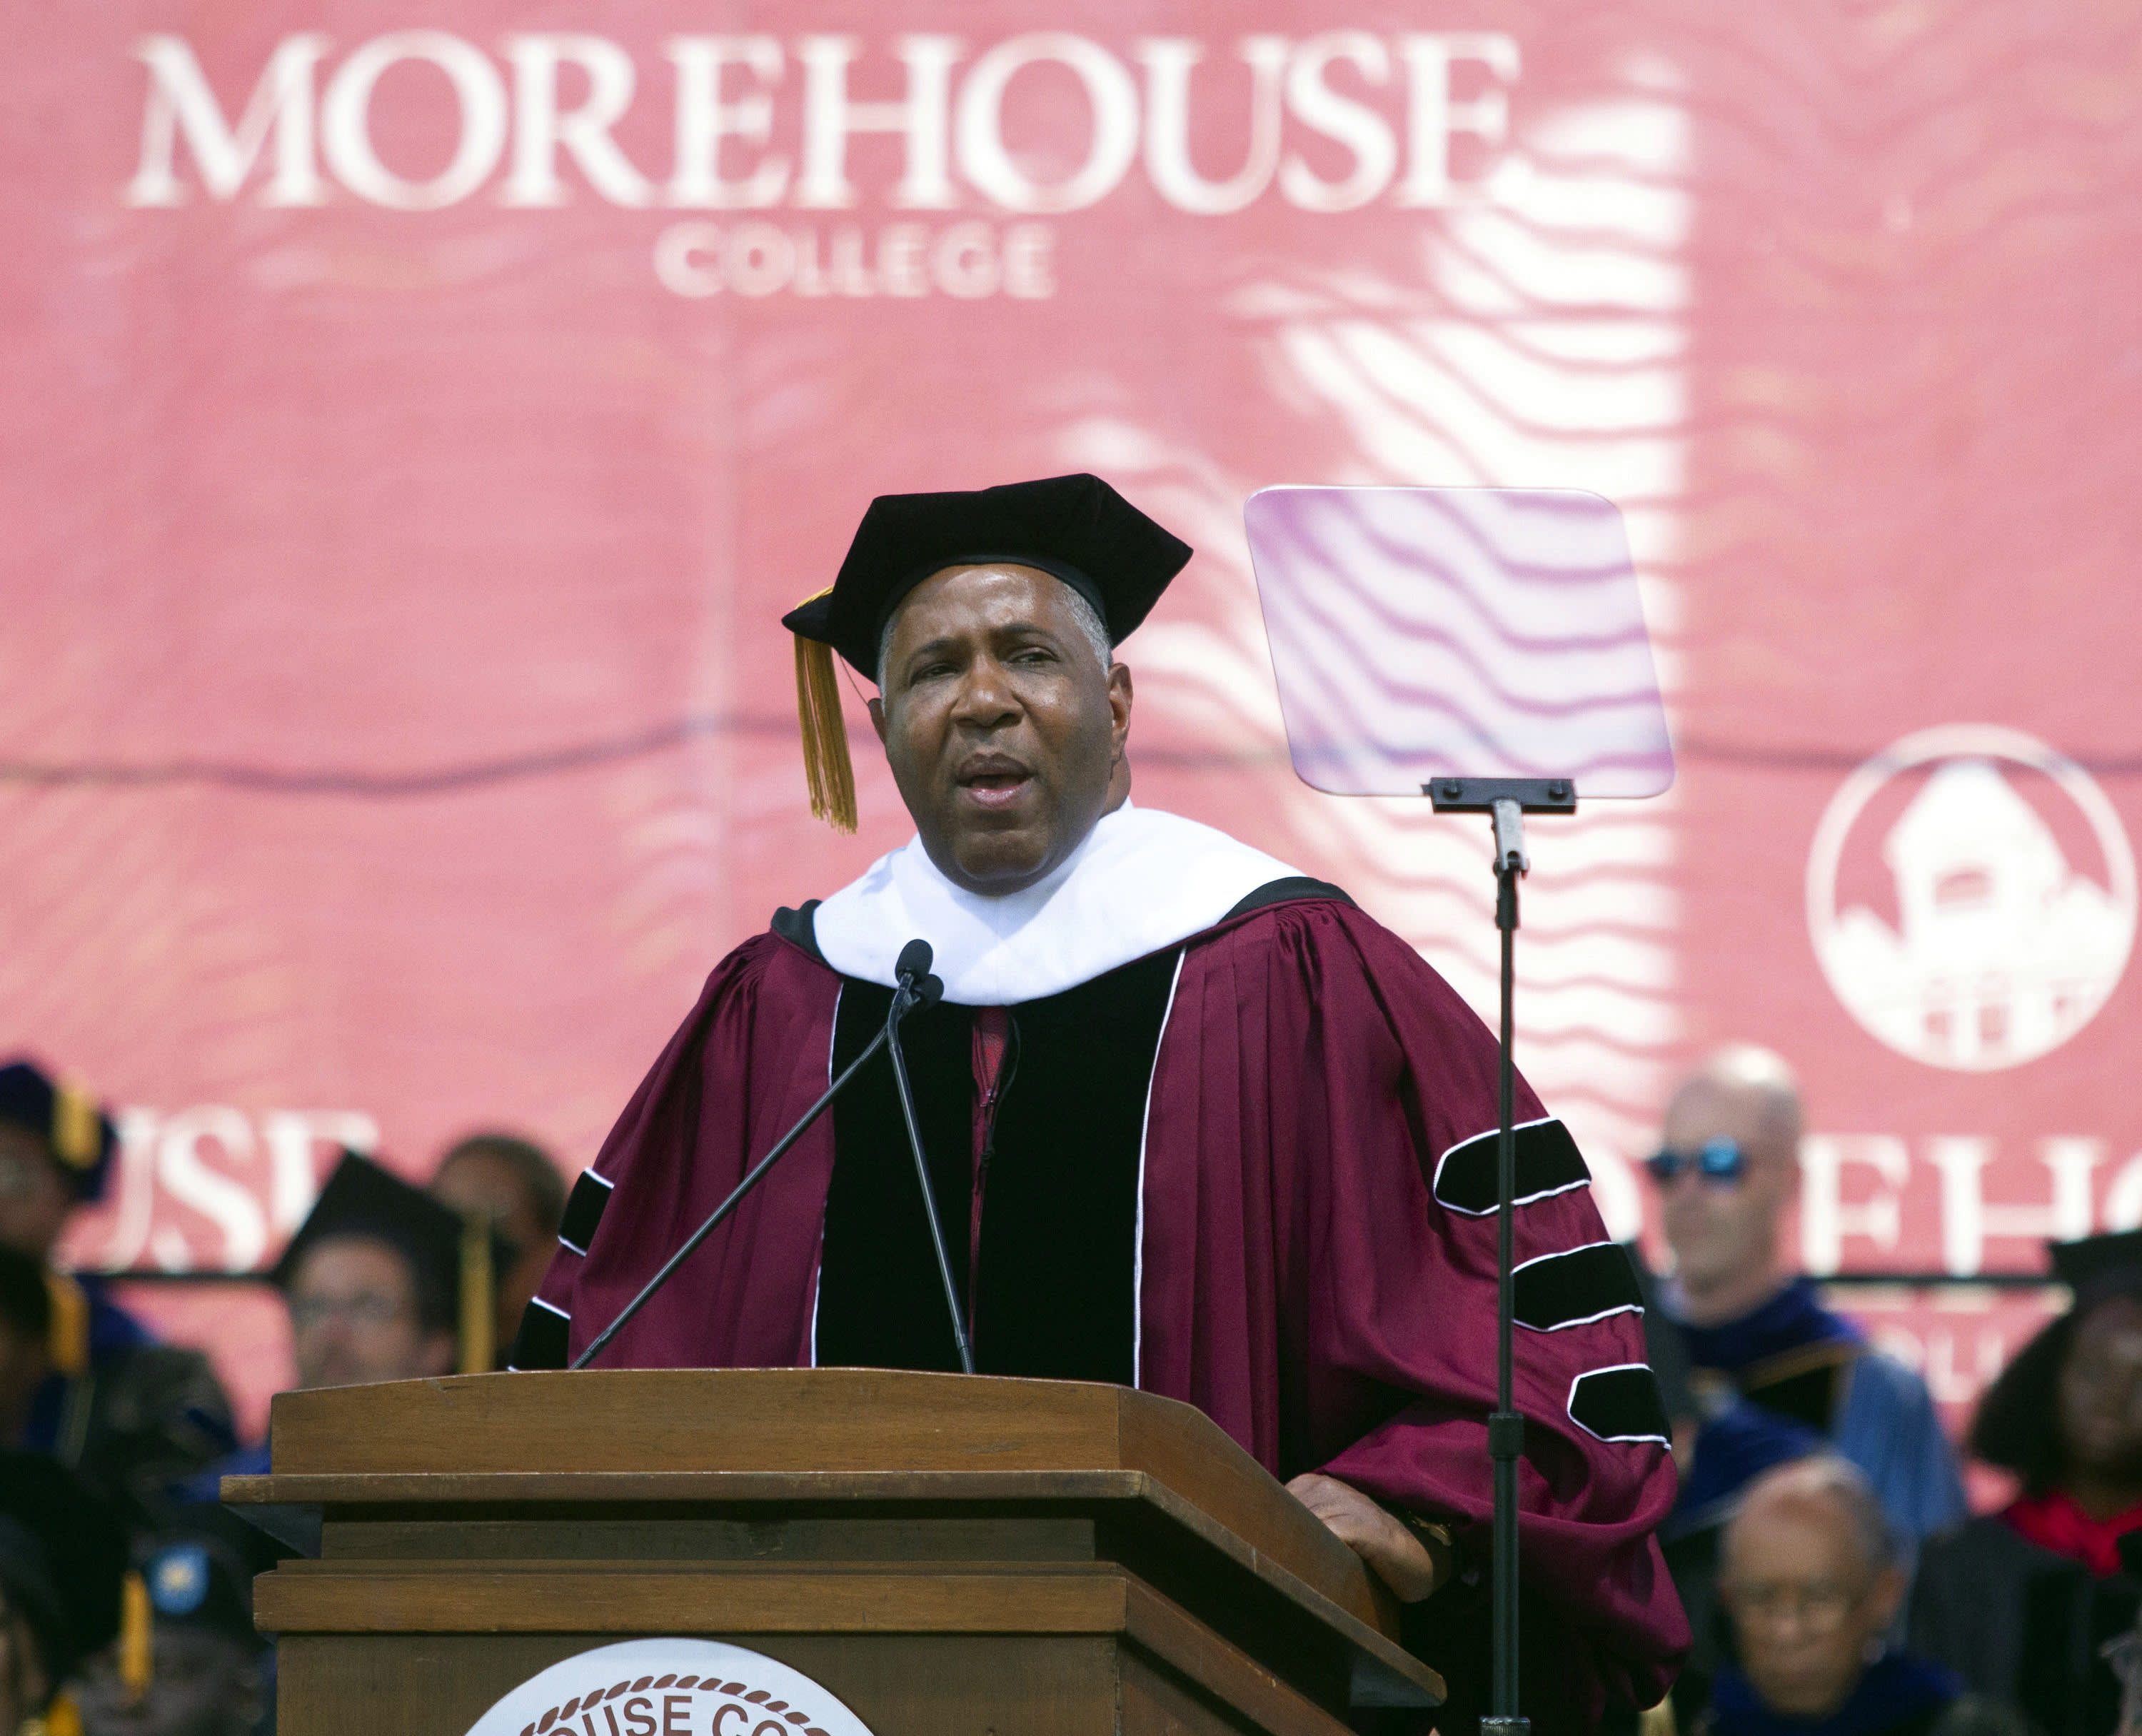 Billionaire technology investor and philanthropist Robert F. Smith announces he will provide grants to wipe out the student debt of the entire 2019 graduating class at Morehouse College in Atlanta, Sunday, May 19, 2019.